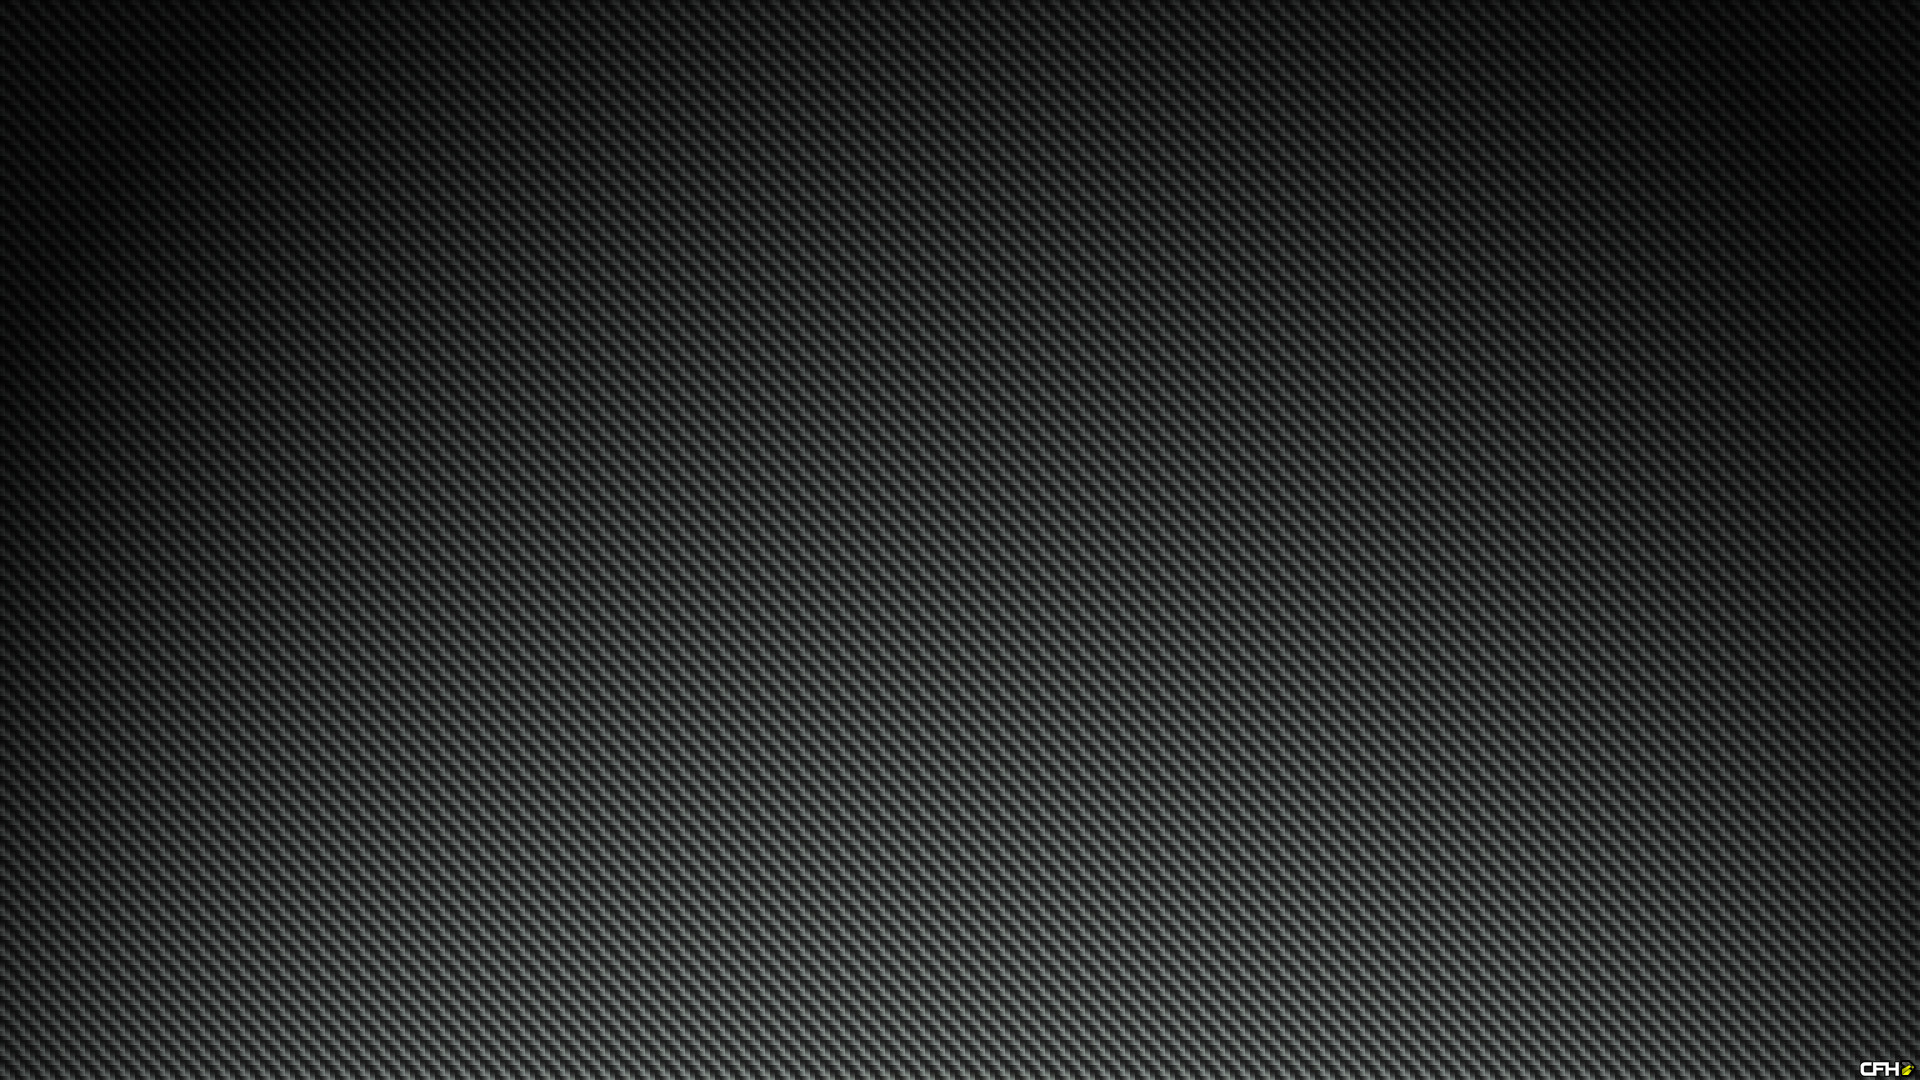 carbon fibre wallpaper ·①